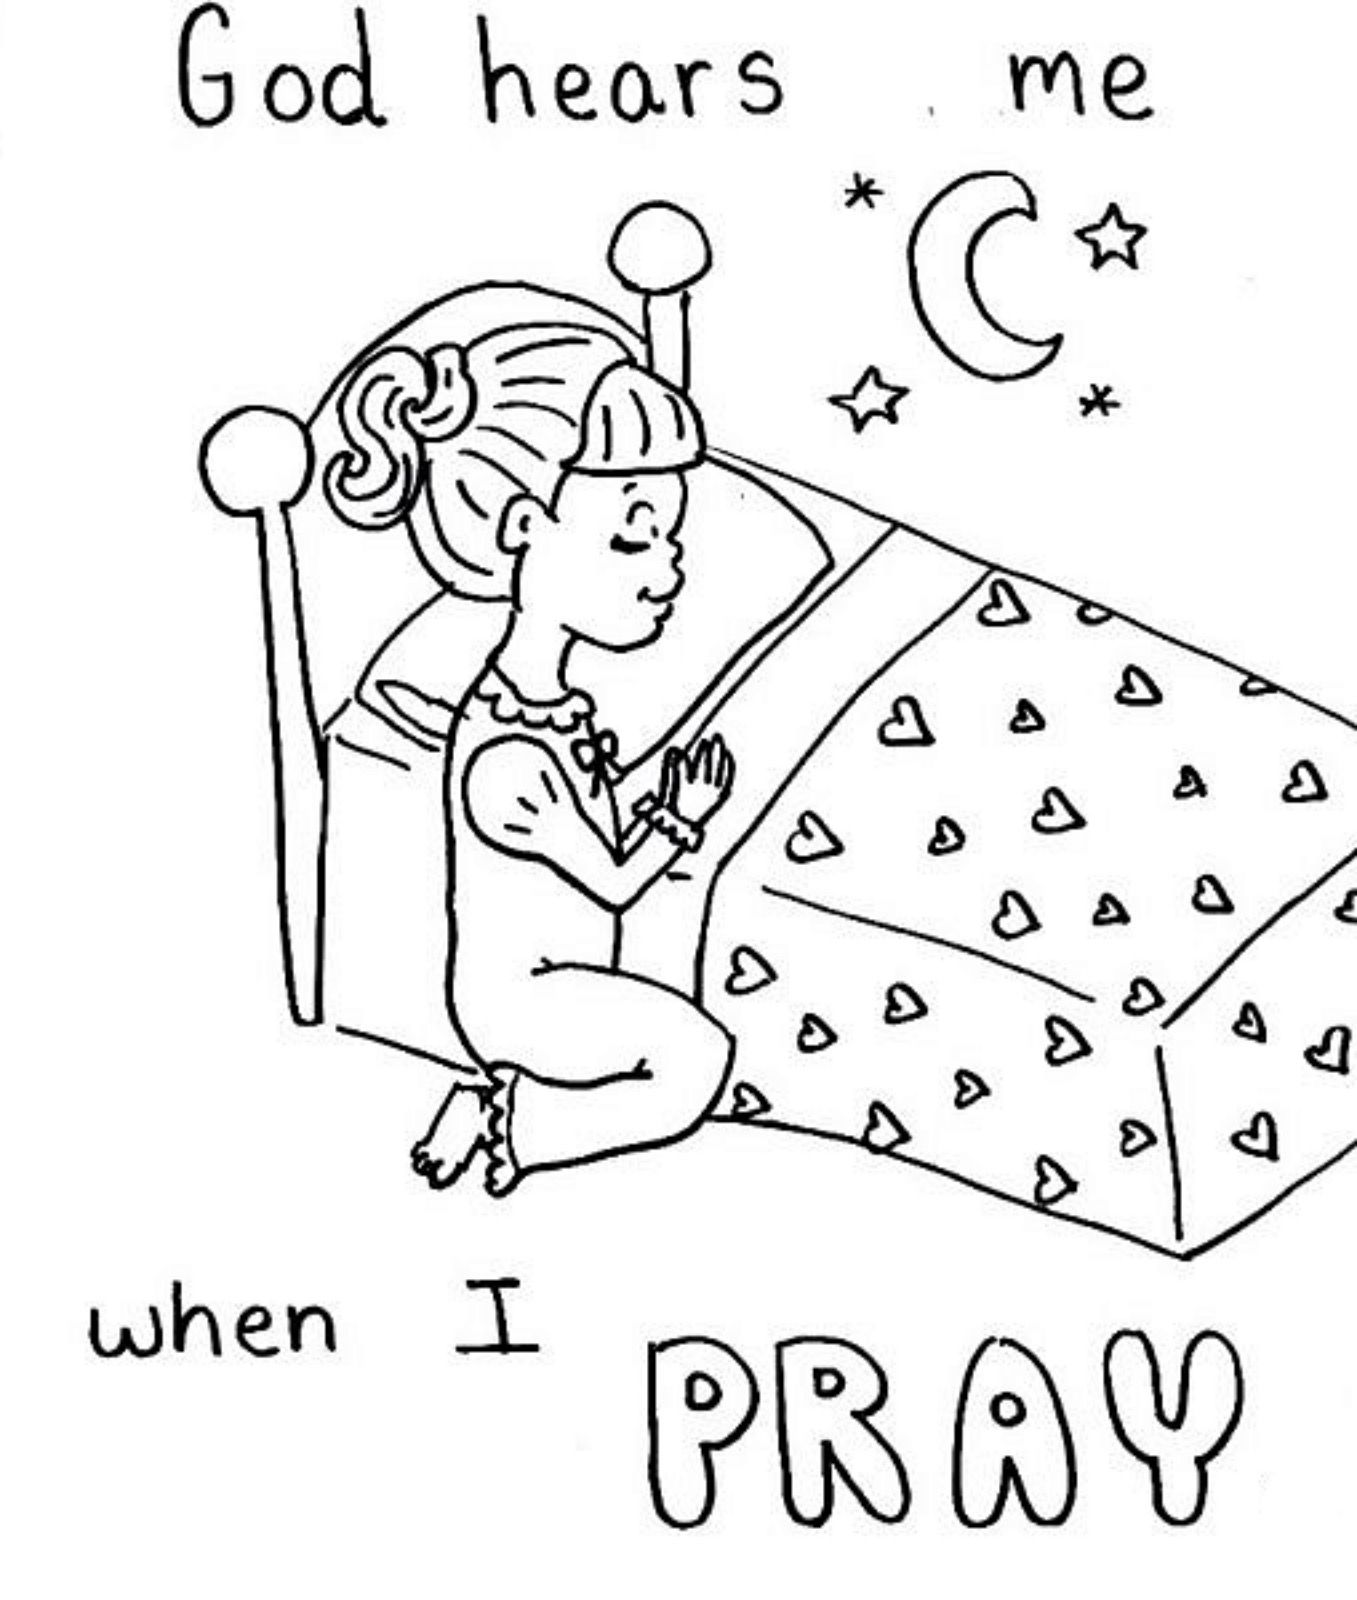 preschool church coloring pages jesus gets ready for the cross matthew 261 13 sunday pages preschool coloring church